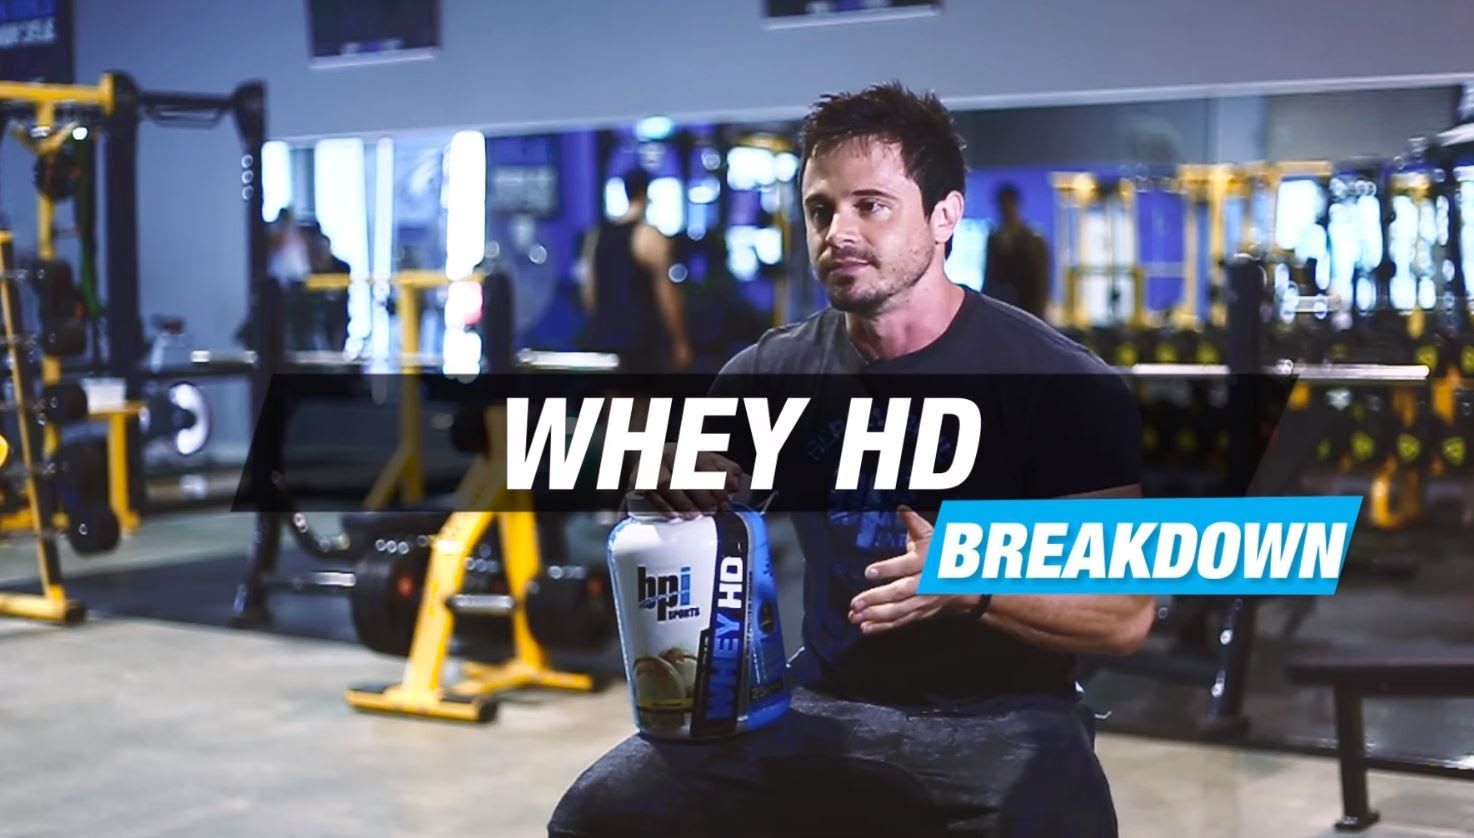 WHEY-HD™-Premium-Protein-Breakdown-Know-Your-Supps-BPI-Sports